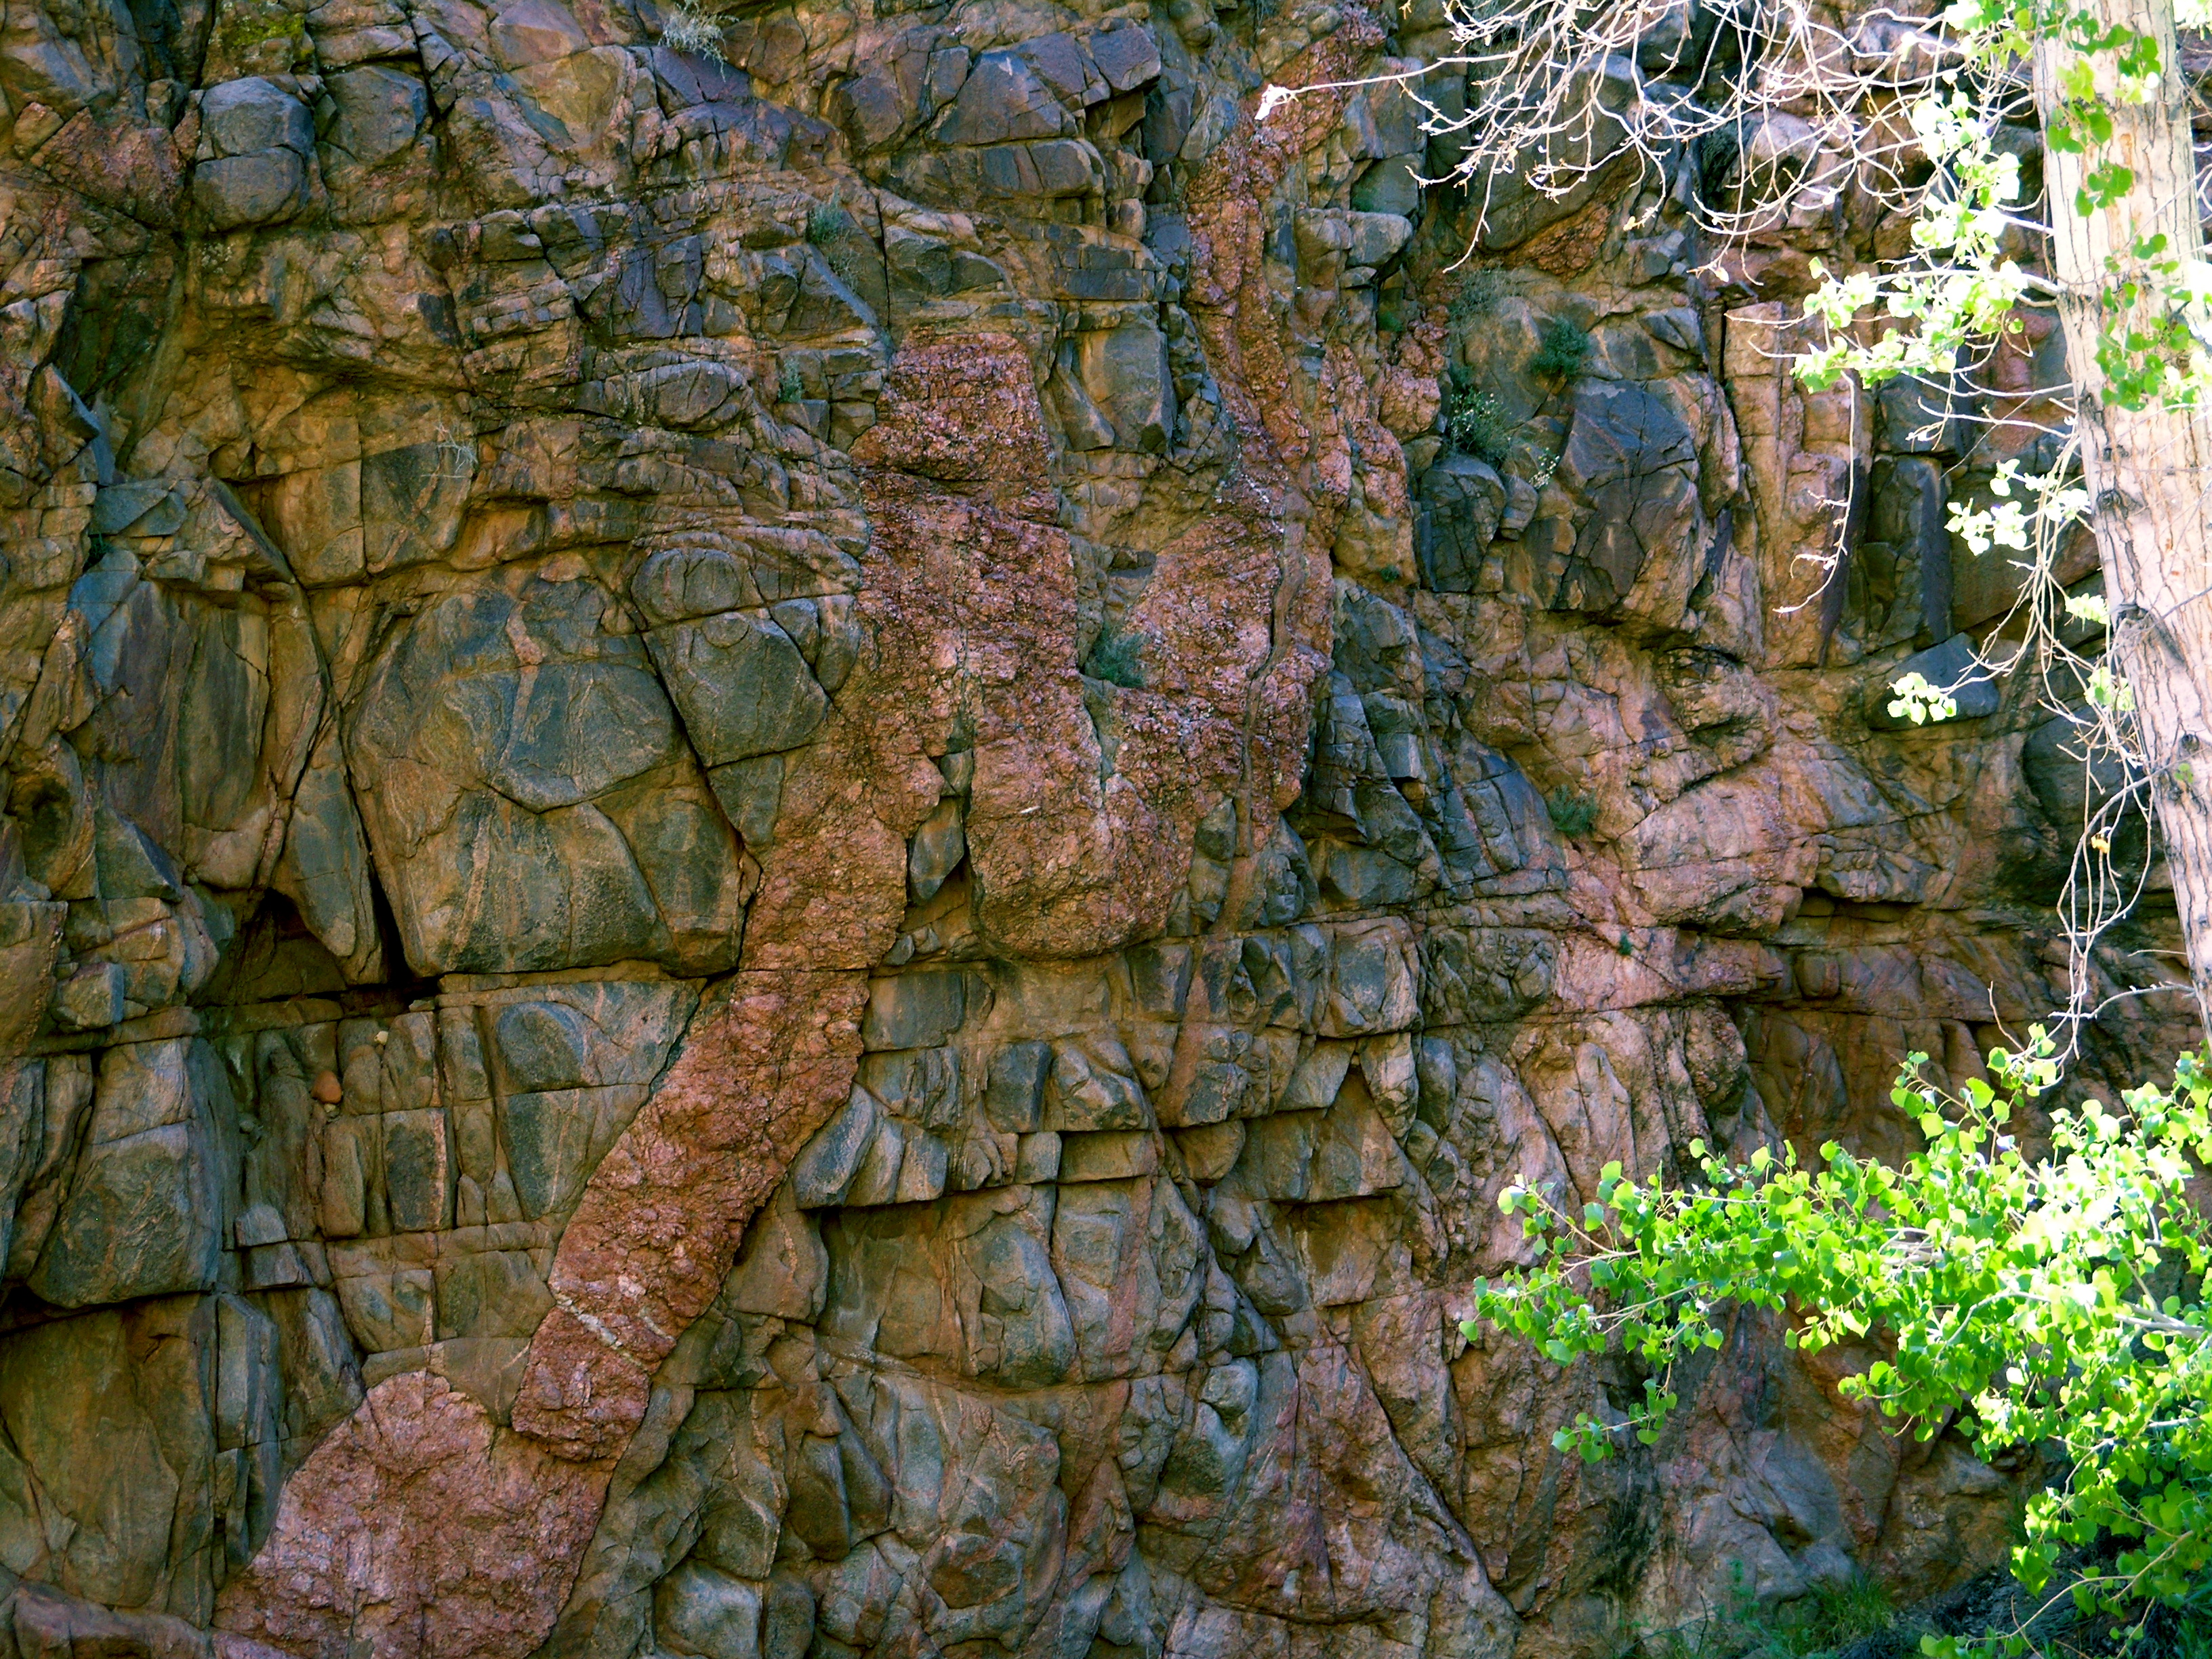 Igeneous granitic rock (pink) cutting across older black and light pink rock. Understanding these relationships helps geologist understand how these area formed and which rocks are older. Image taken in the Grand Canyon National Park on the South Bright Angel Trail just above the Devil's Cork Screw. Zoroaster Granite (pink) and Vishnu Schist (black).